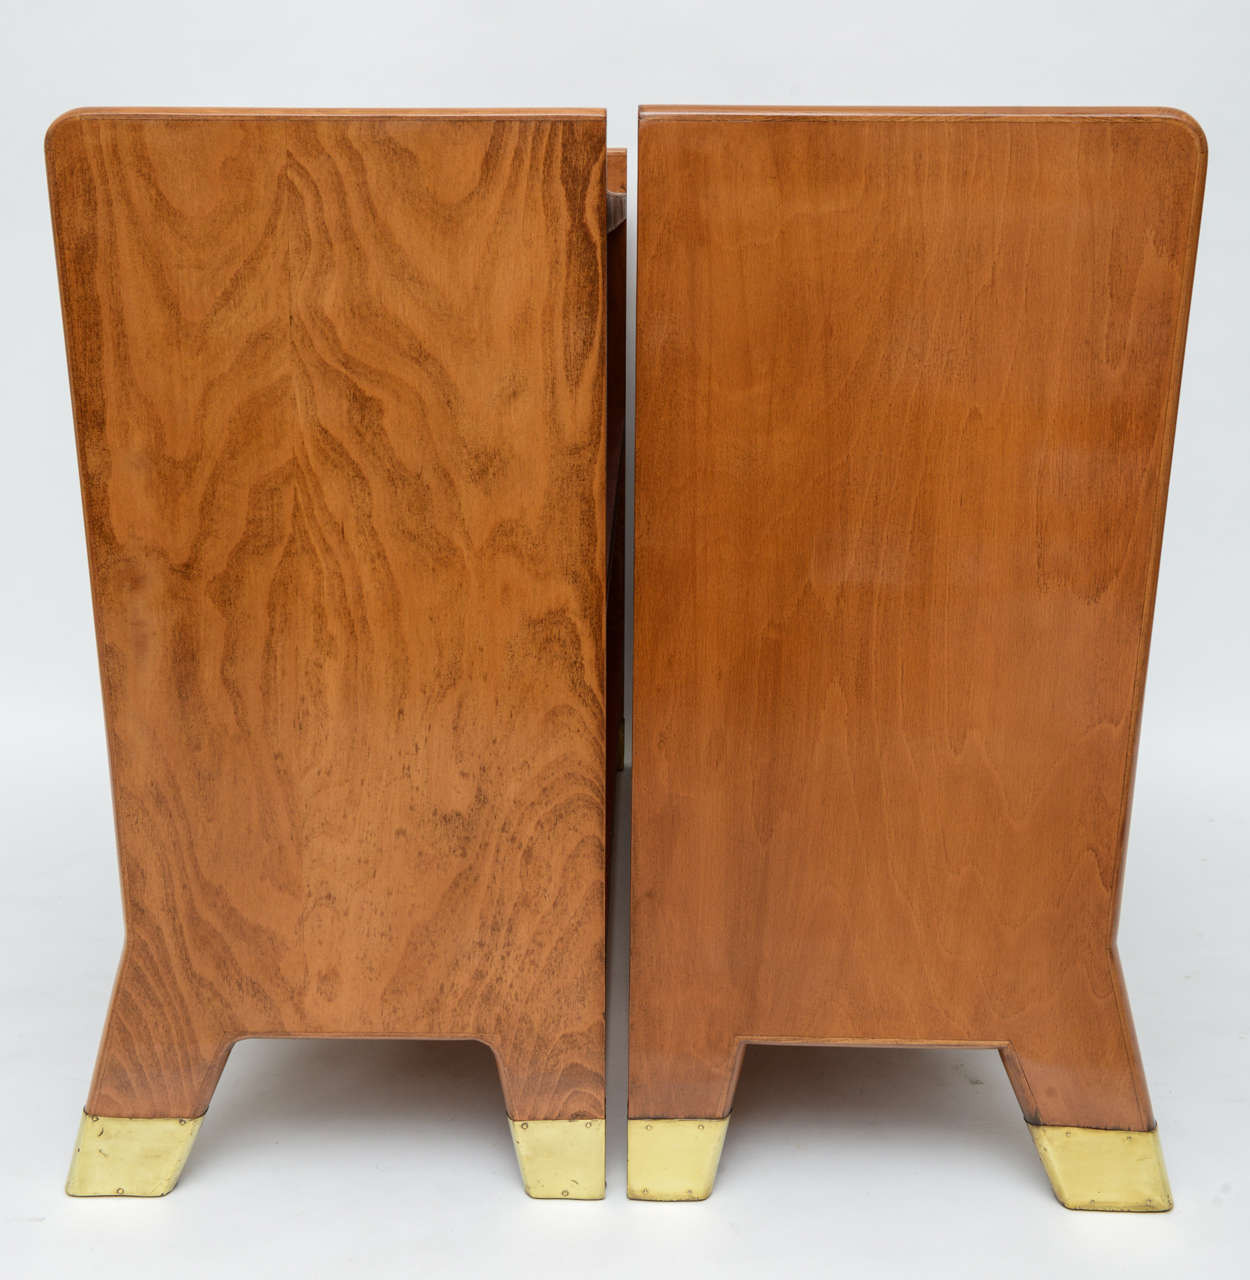 Fine Gio Ponti Fruitwood and Leather Dwarf Bookcase In Excellent Condition For Sale In Miami, FL